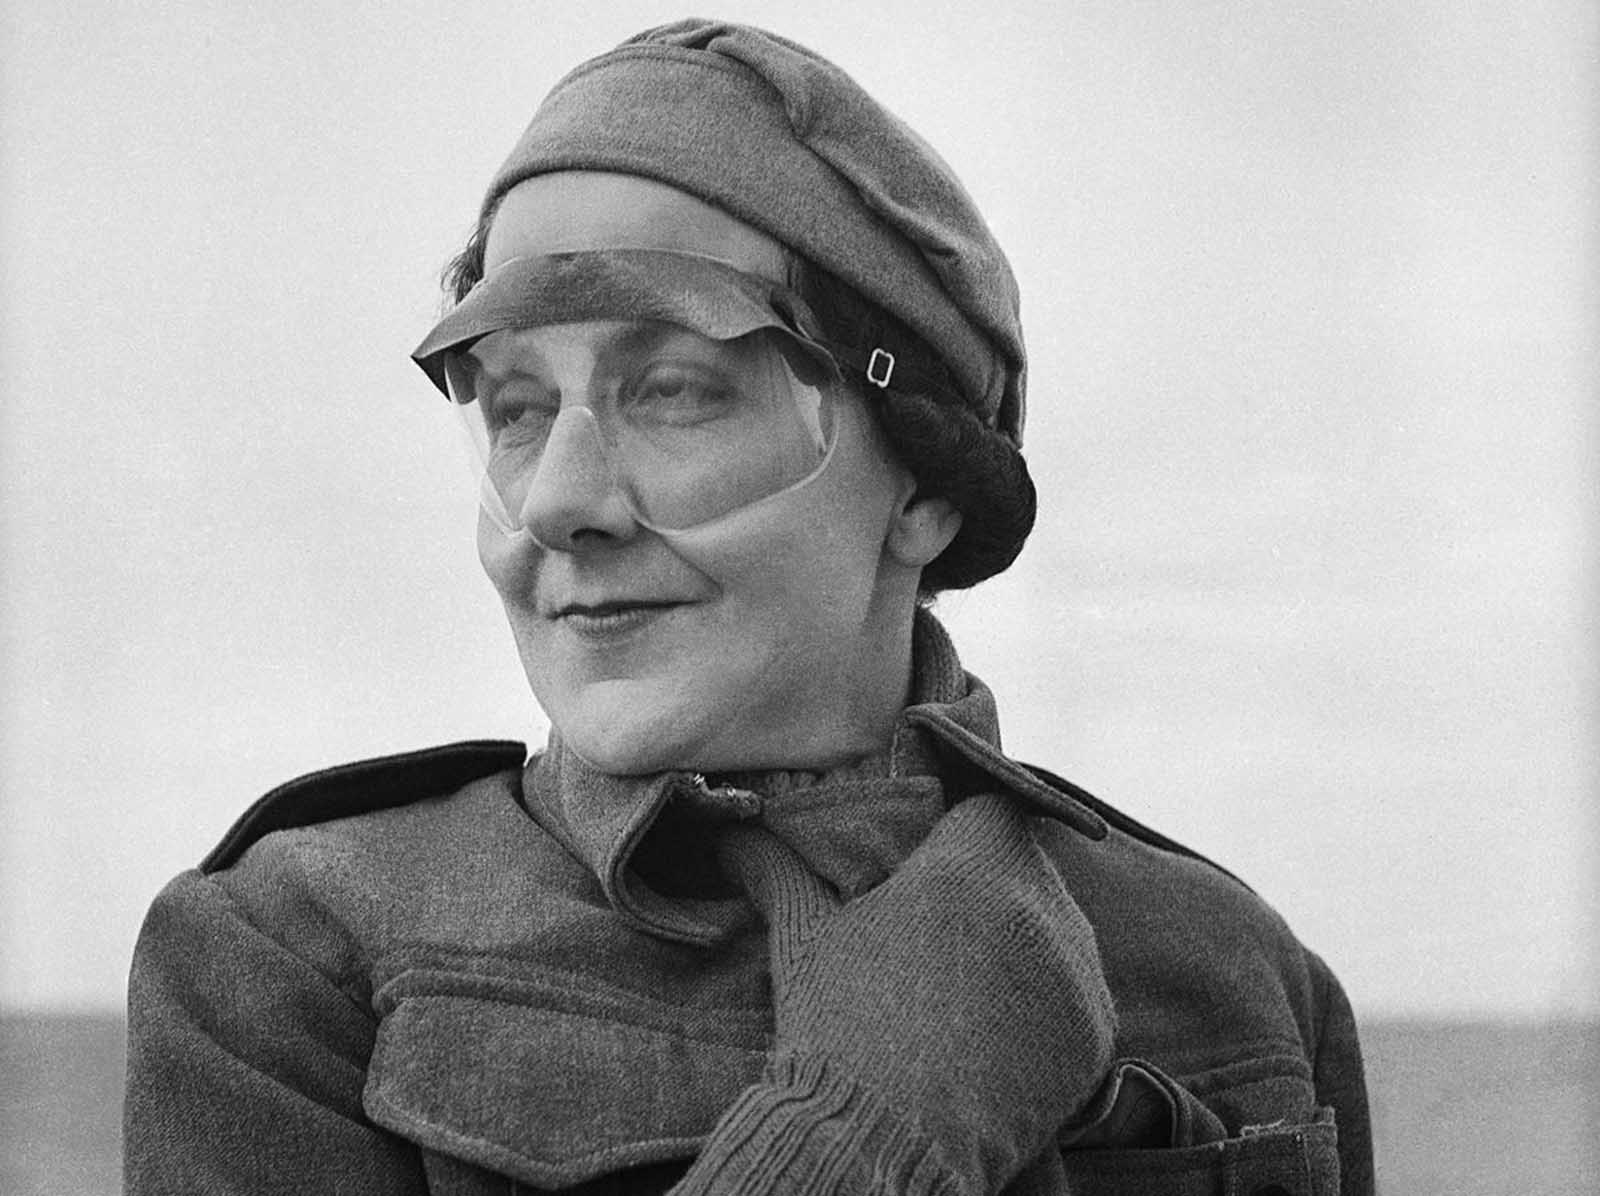 Miss Jean Pitcaithy, a nurse with a New Zealand Hospital Unit stationed in Libya, wears goggles to protect her against whipping sands, on June 18, 1942.